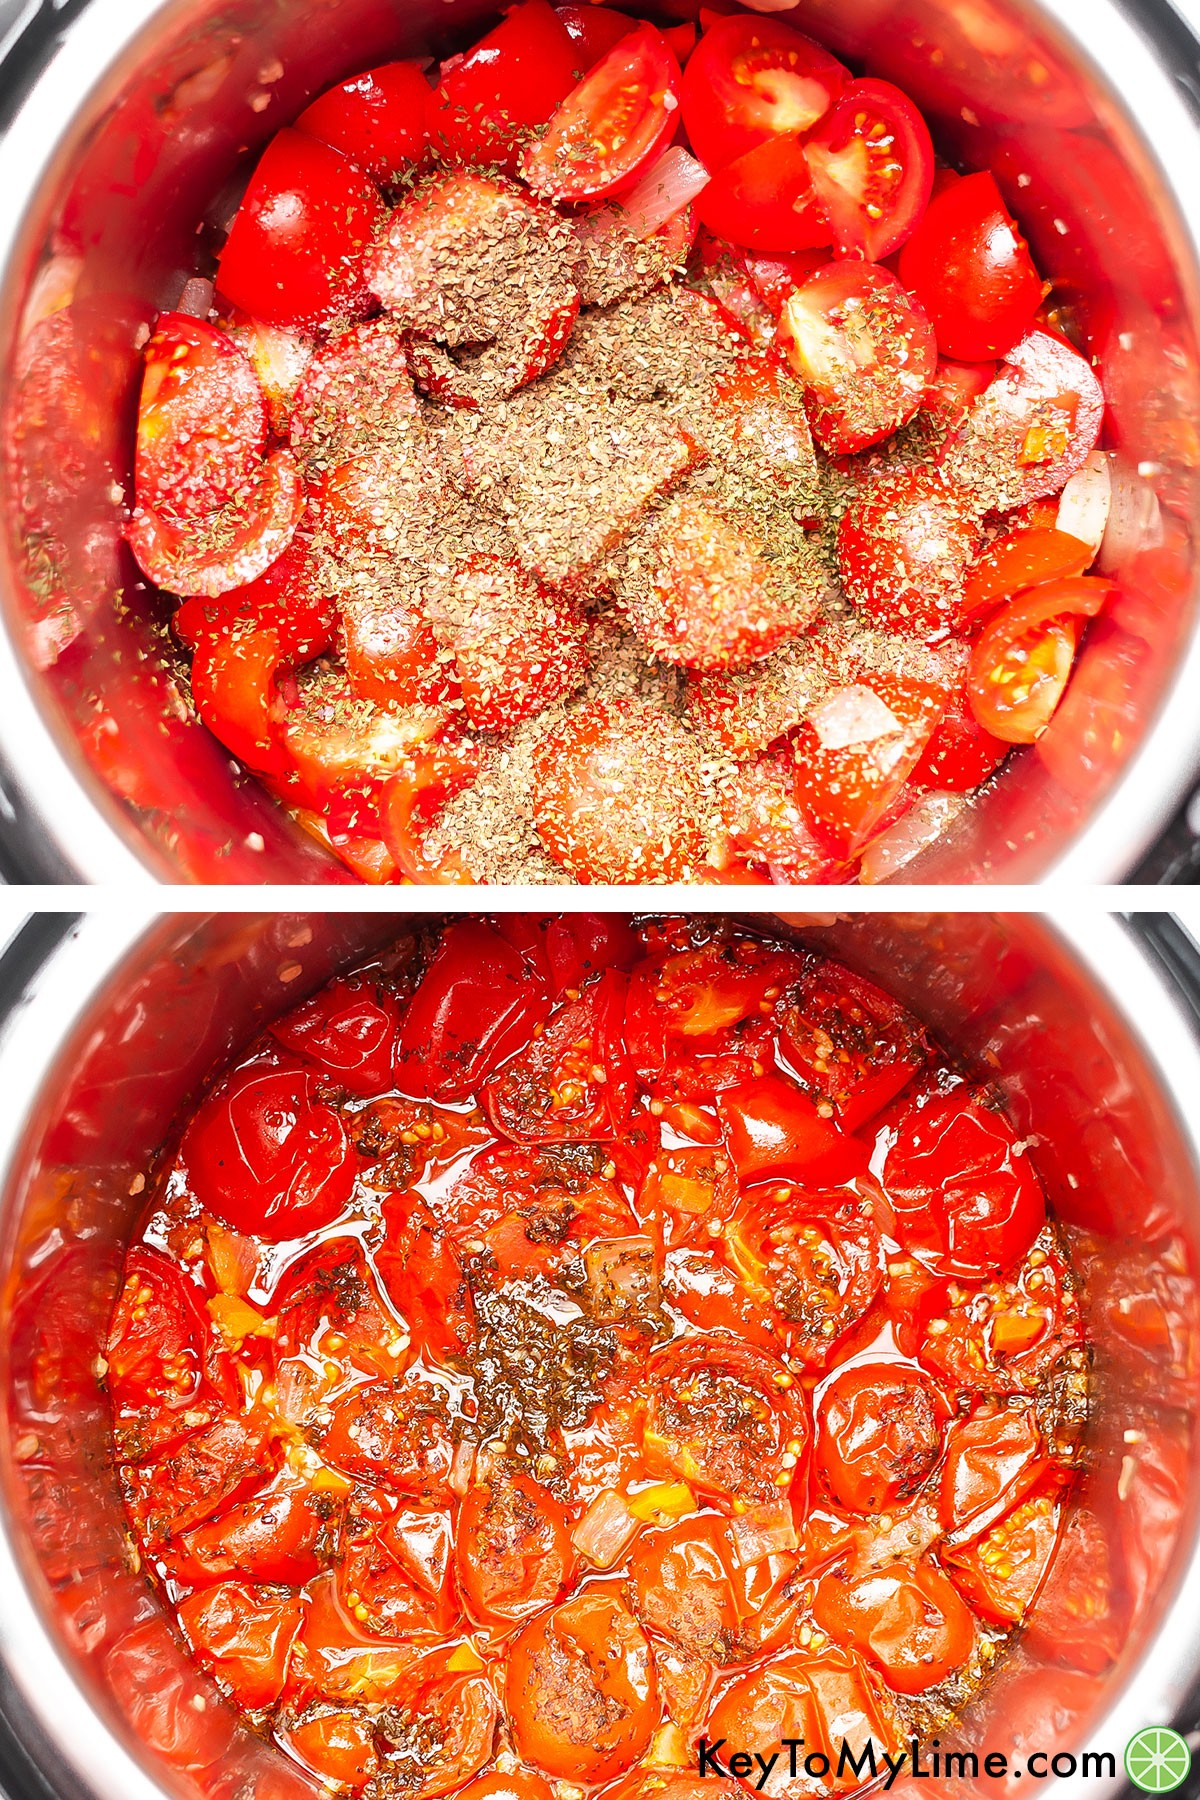 A process collage showing what the tomatoes looks like before and after cooking in the Instant Pot.